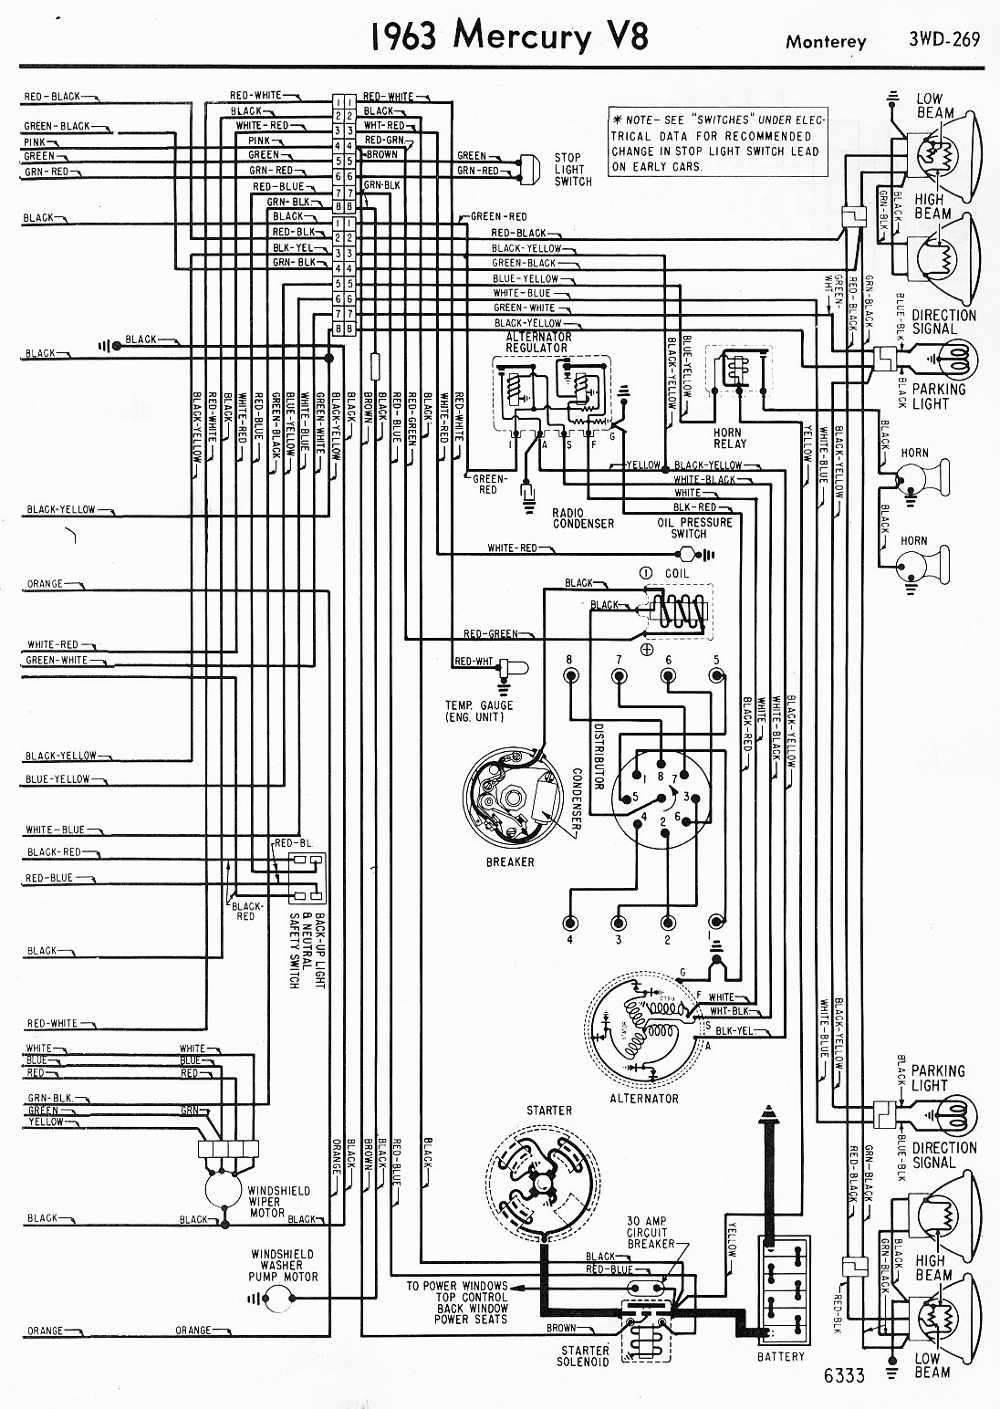 Luxury 1978 Mercury Outboard Wiring Diagram Images - Wiring Diagram ...